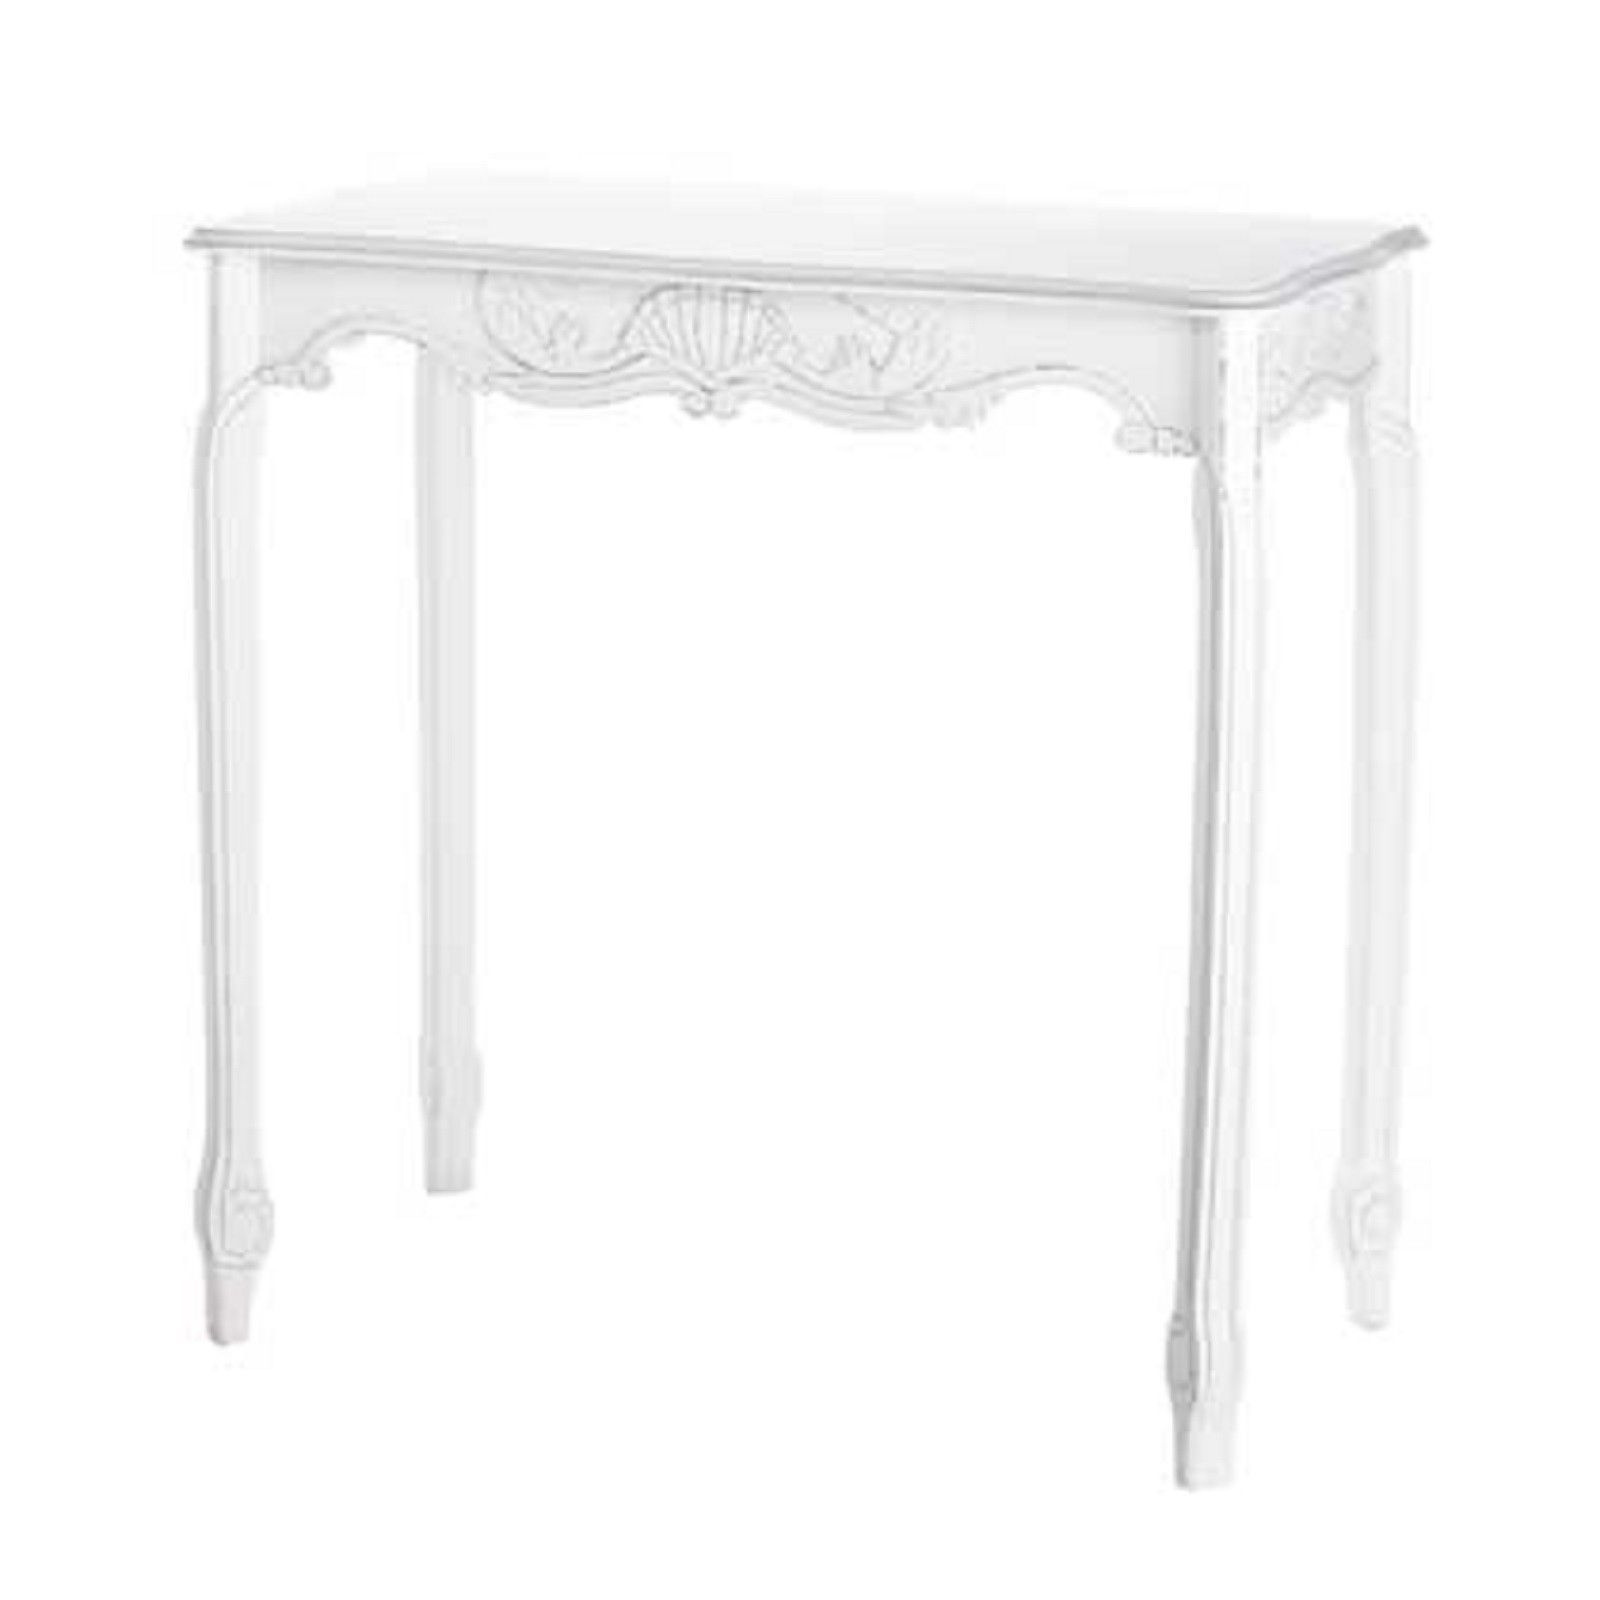 Hall Console White Table - New image 2